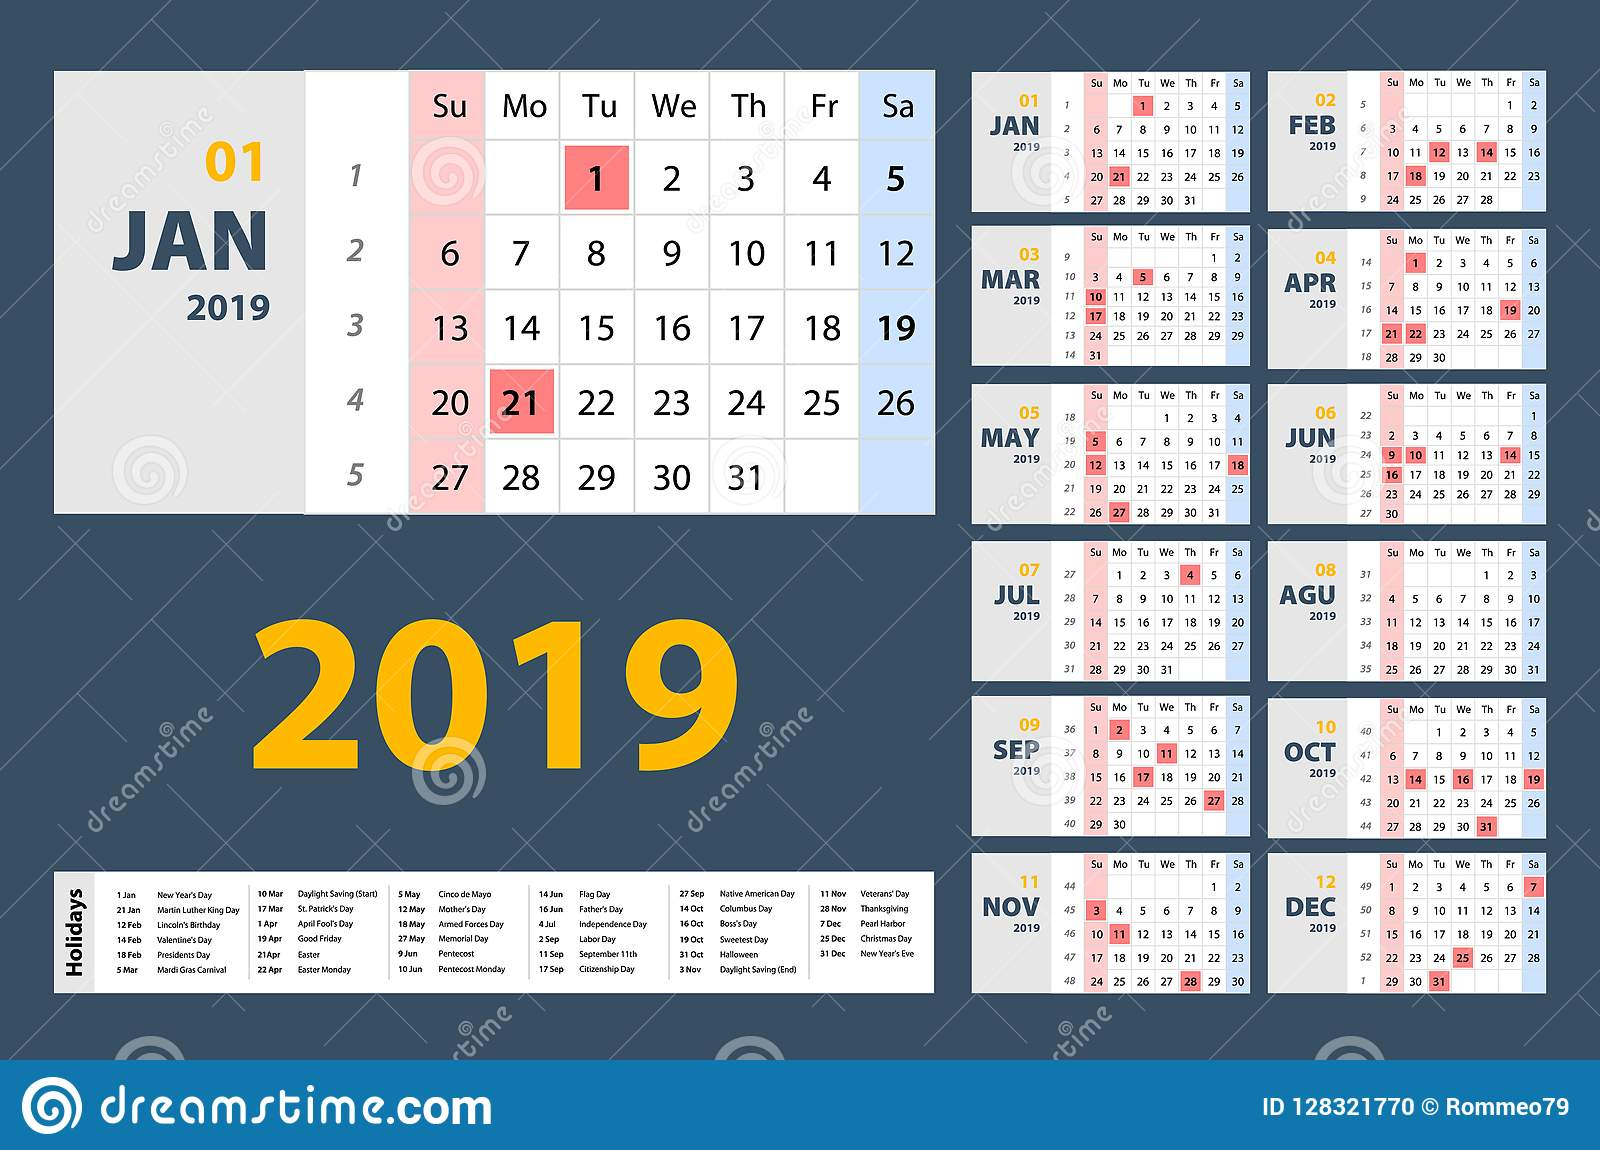 vector of 2019 new year calendar in clean minimal table simple style holiday event planner